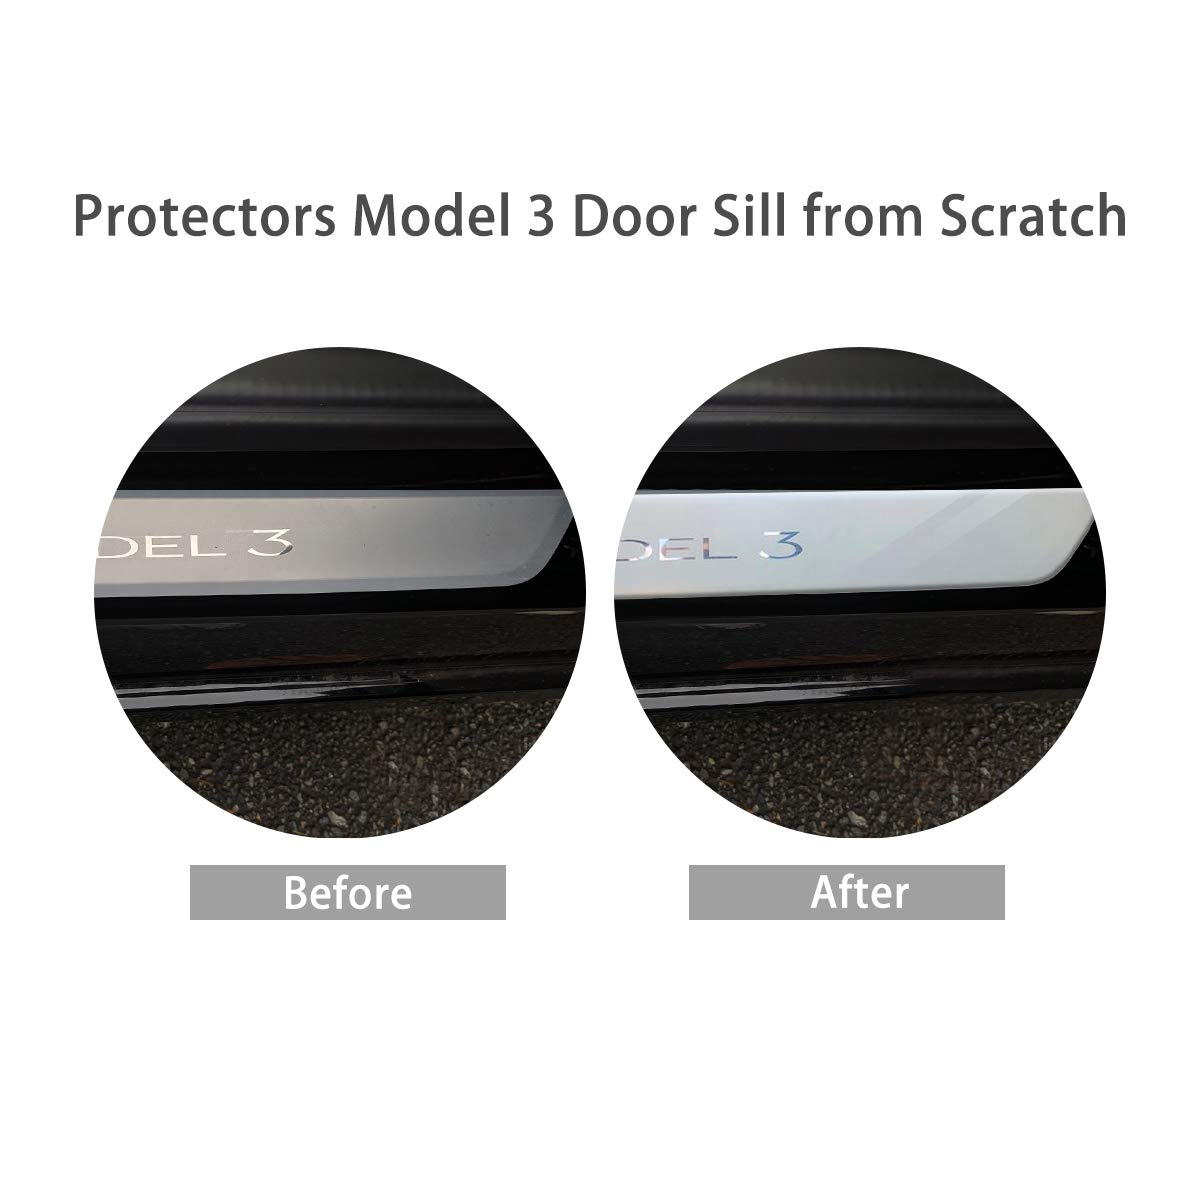 2 Pieces BASENOR Tesla Model 3 Door Sill Wrap Clear Protection Kit Car Stickers for Model 3